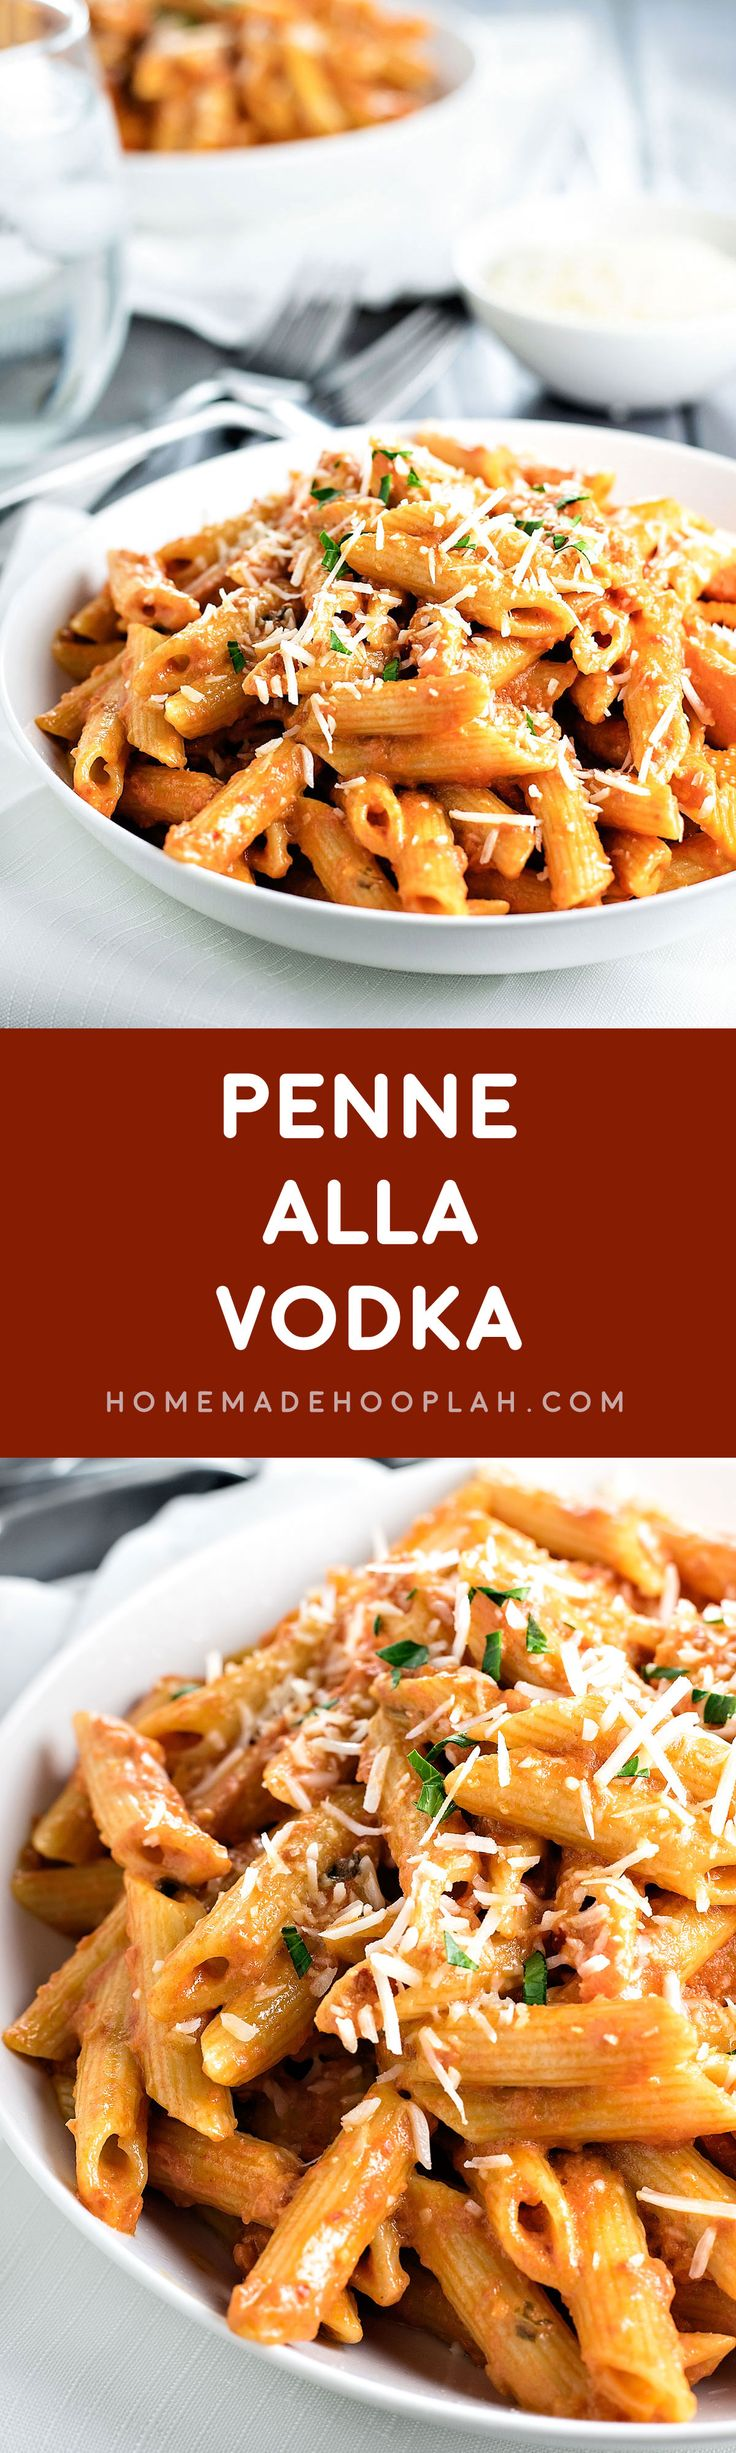 Penne Alla Vodka! Skip the restaurant and have quality vodka sauce at home. This recipe has just enough tomato flavor to give the sauce a kick without overpowering the cream!   HomemadeHooplah.com